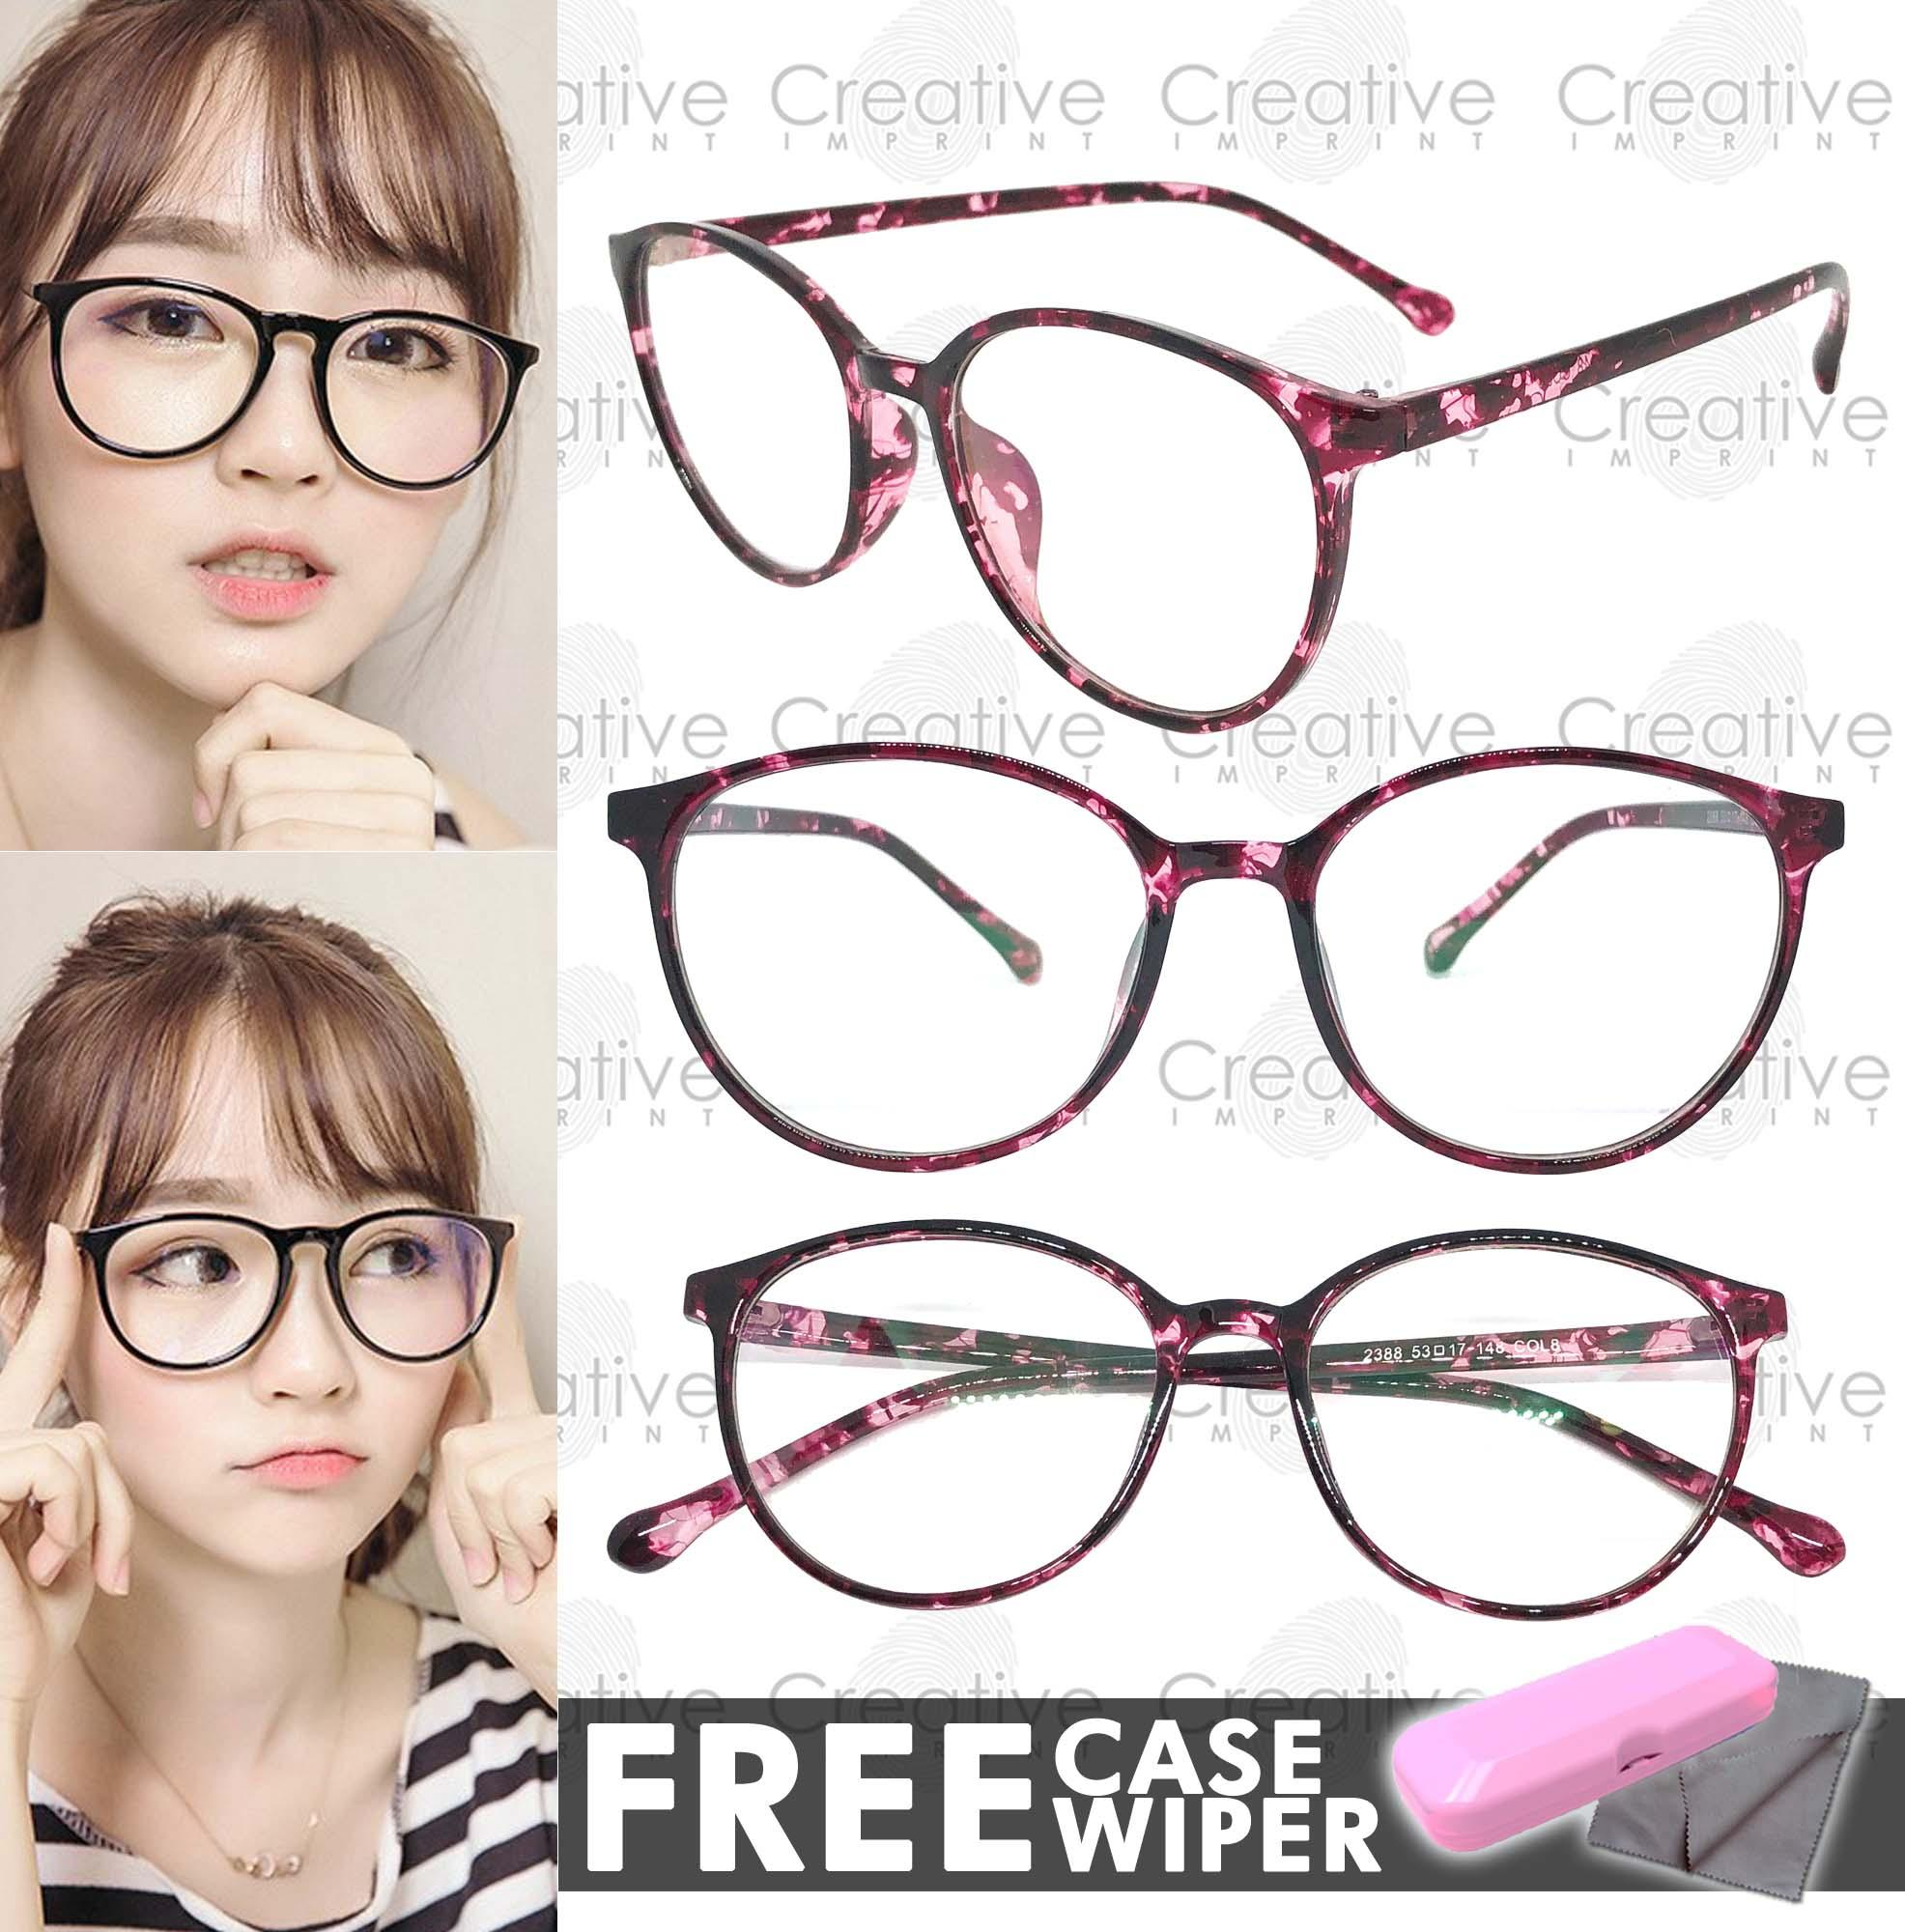 b7e1c6971a2 Creative Imprint Eyeglasses Anti-Radiation Lens ( 05 Animal Print Purple)  Anti-